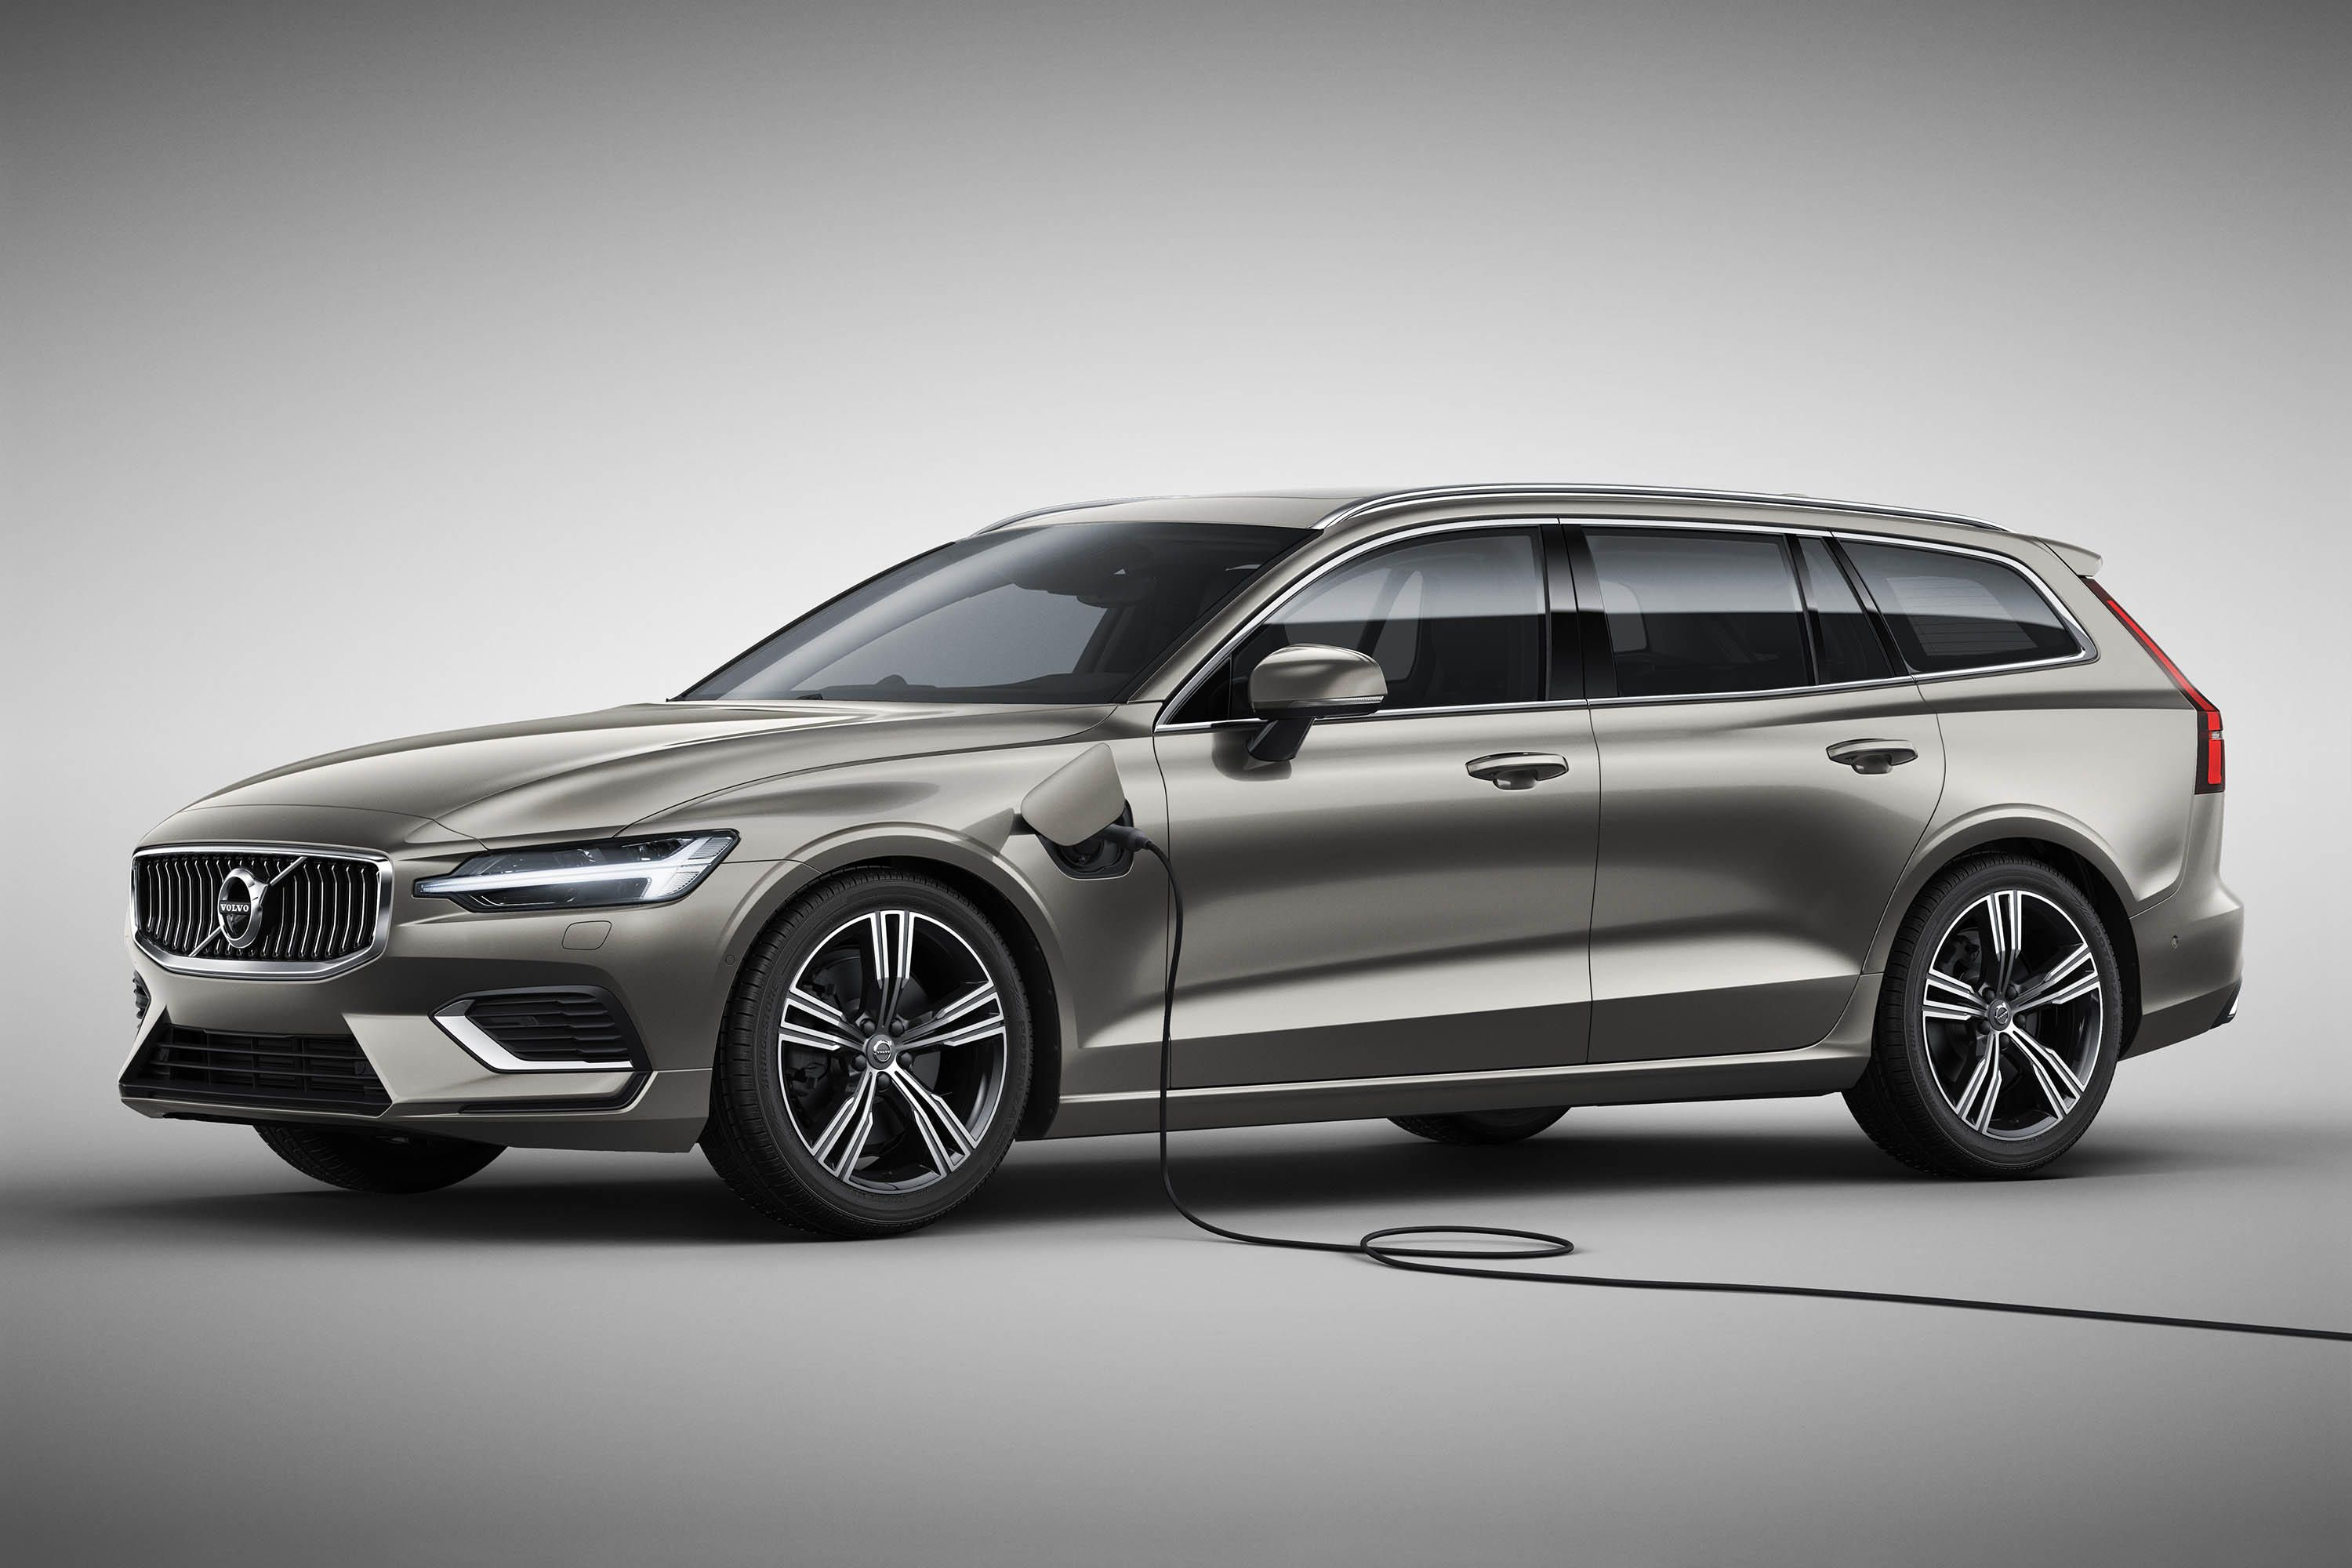 htm keystone offers lease image deals price luxury wagon pa used sports exterior volvo doylestown cross finance main and country new oem